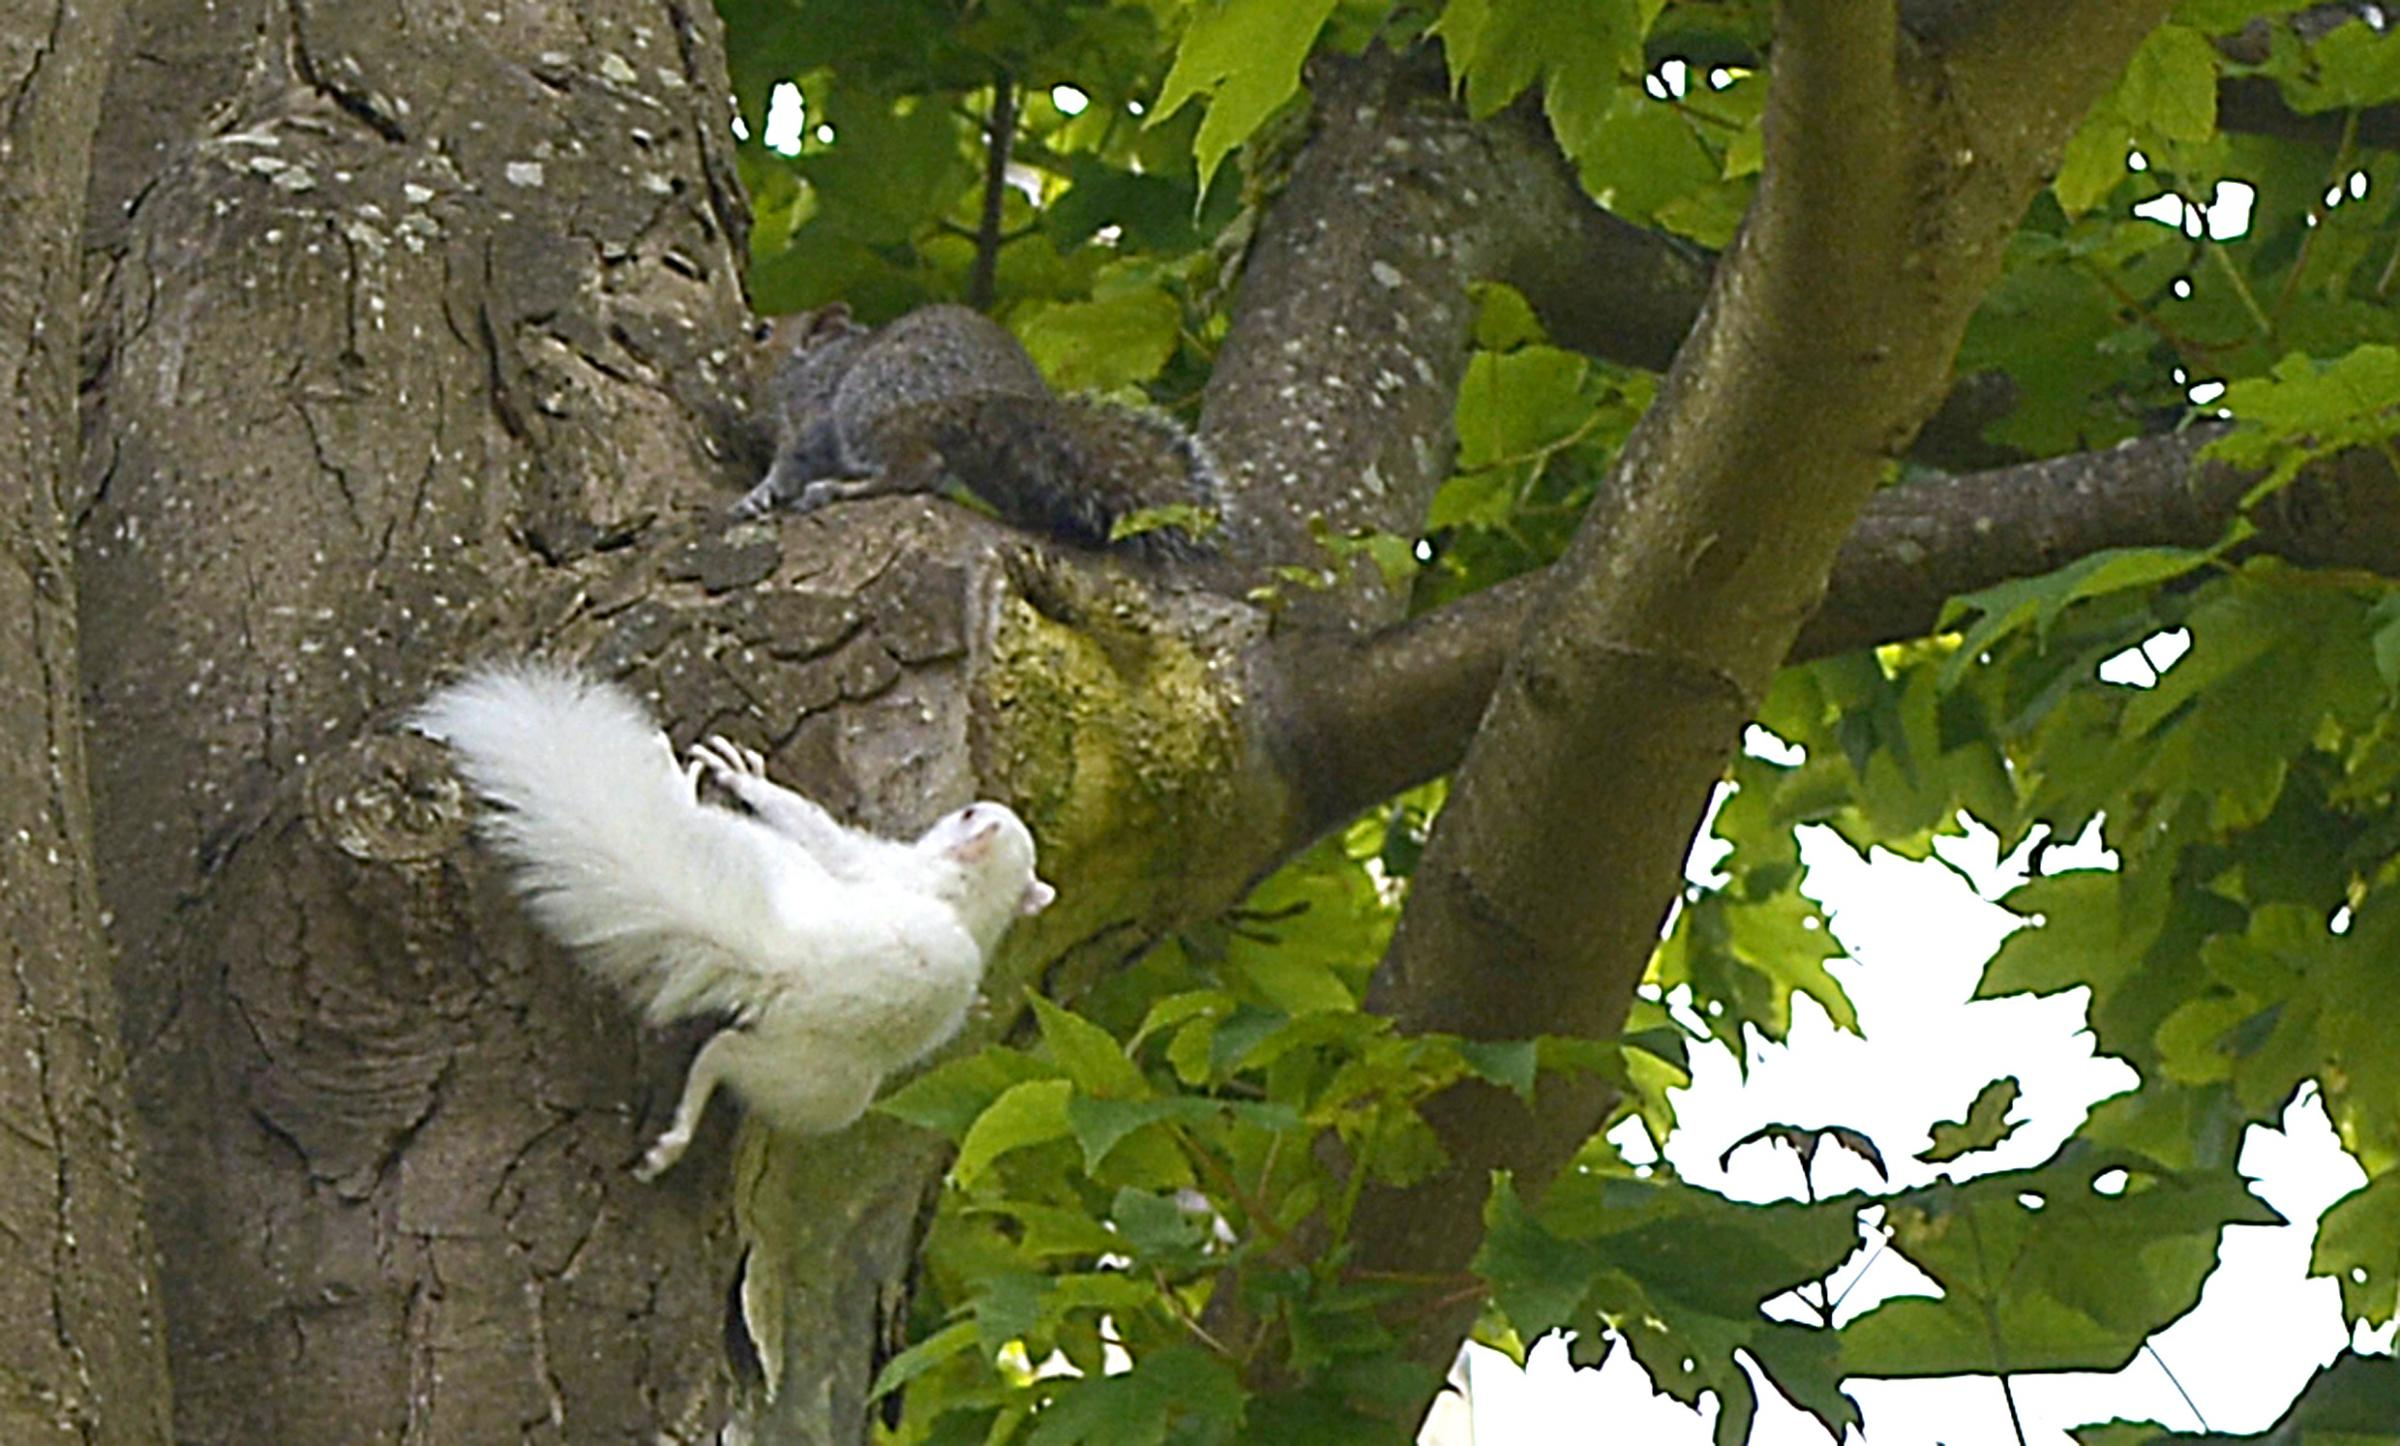 Rare albino squirrel caught scrapping with grey counterpart